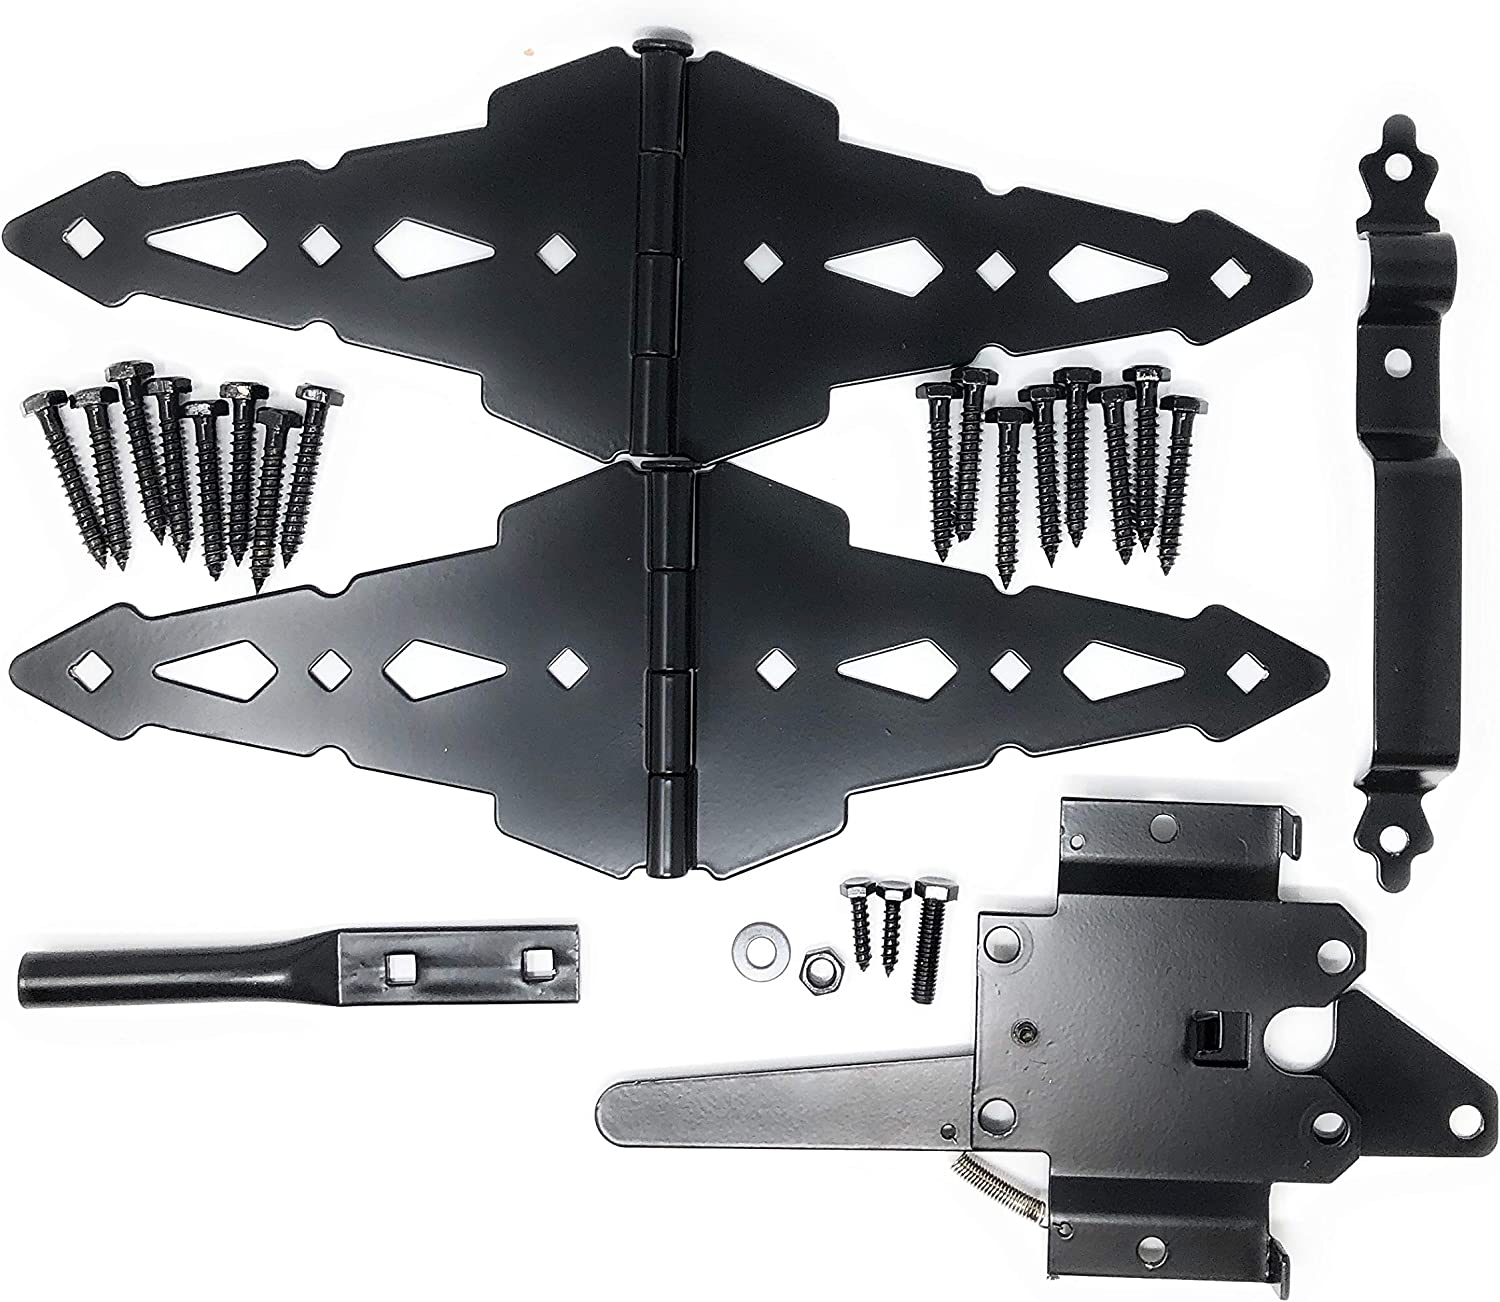 "Wood Gate Hardware Set – Heavy Duty Kit for Fence Swing Gate- Outdoor Decorative Black Finish w/ 8"" Strap Hinges and Spring Loaded Latch"